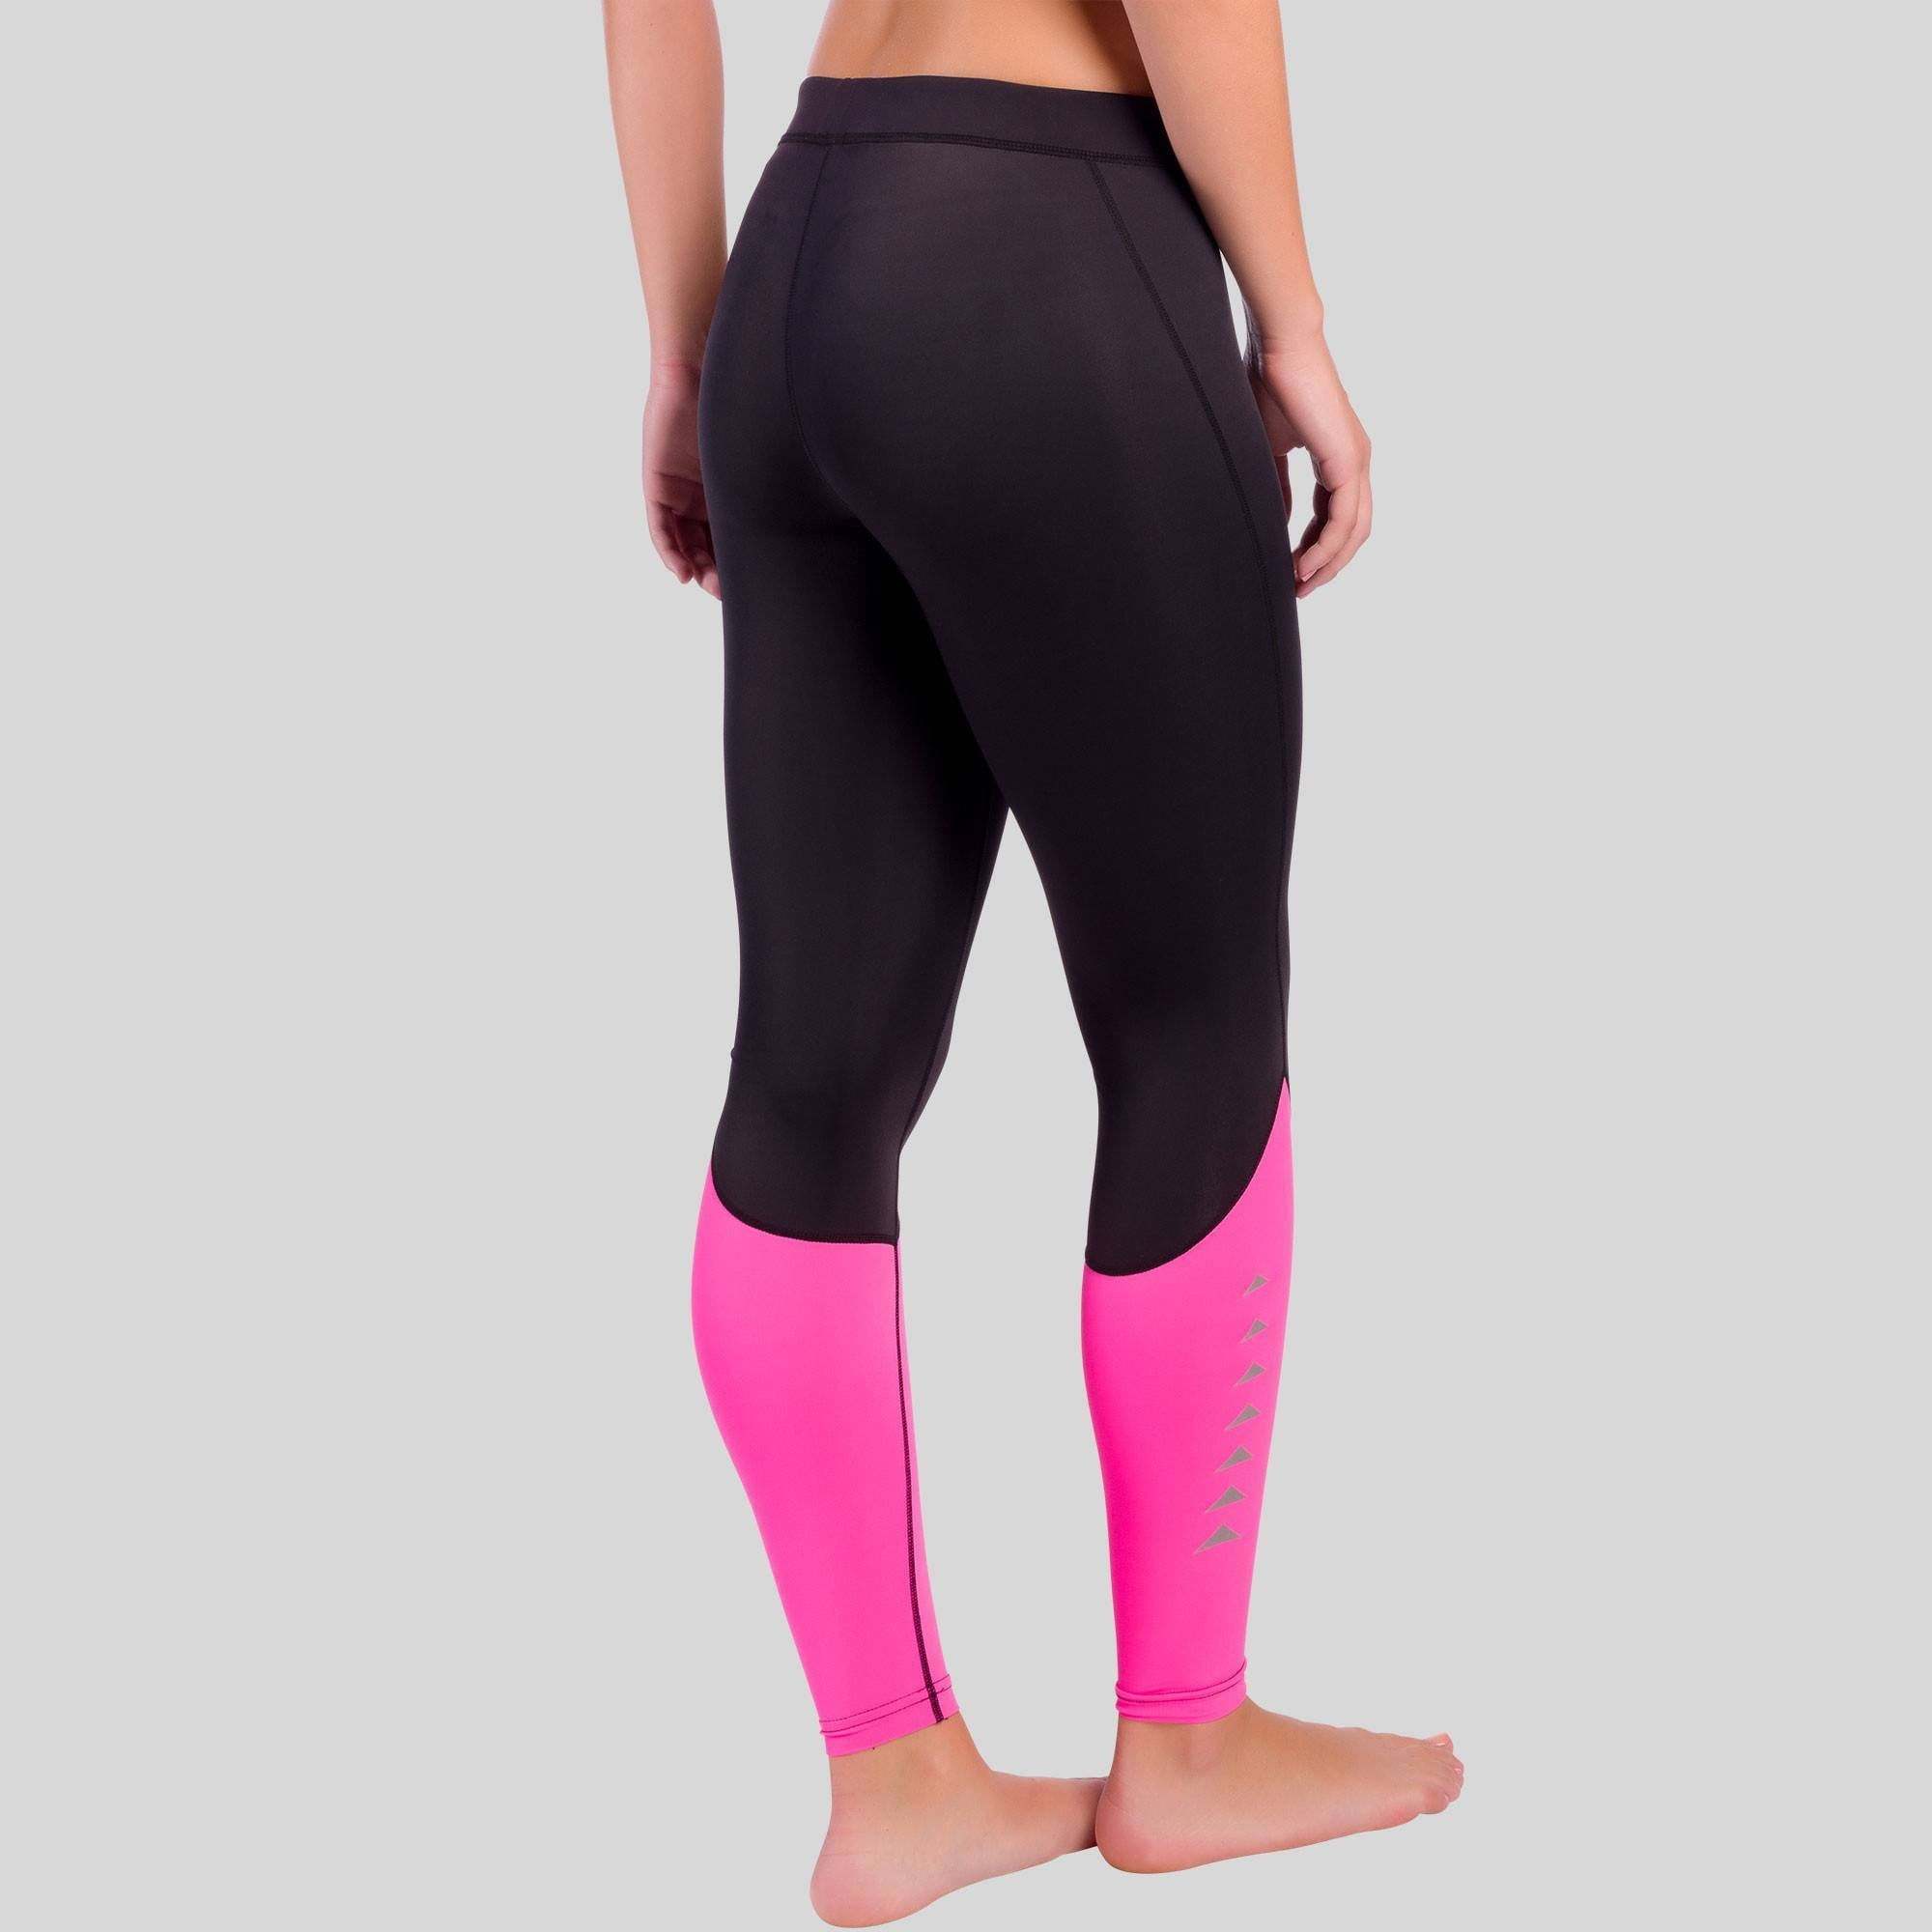 fc5abe6efe Women's XT Compression Tights - Running Tight | Zensah